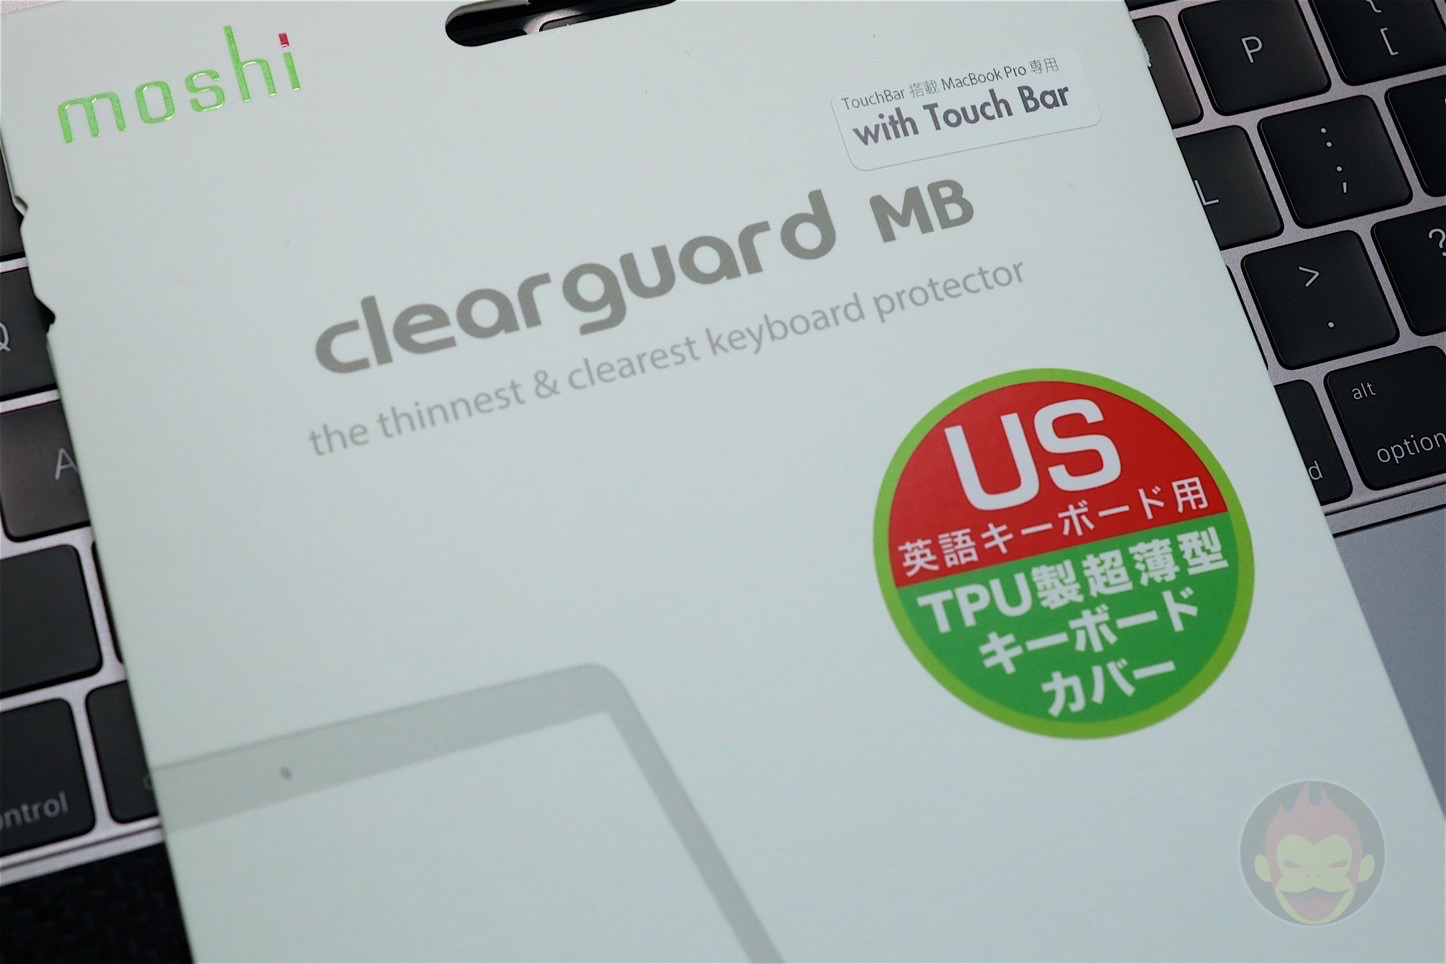 moshi-Clearguard-MB-with-TouchBar-01.jpg